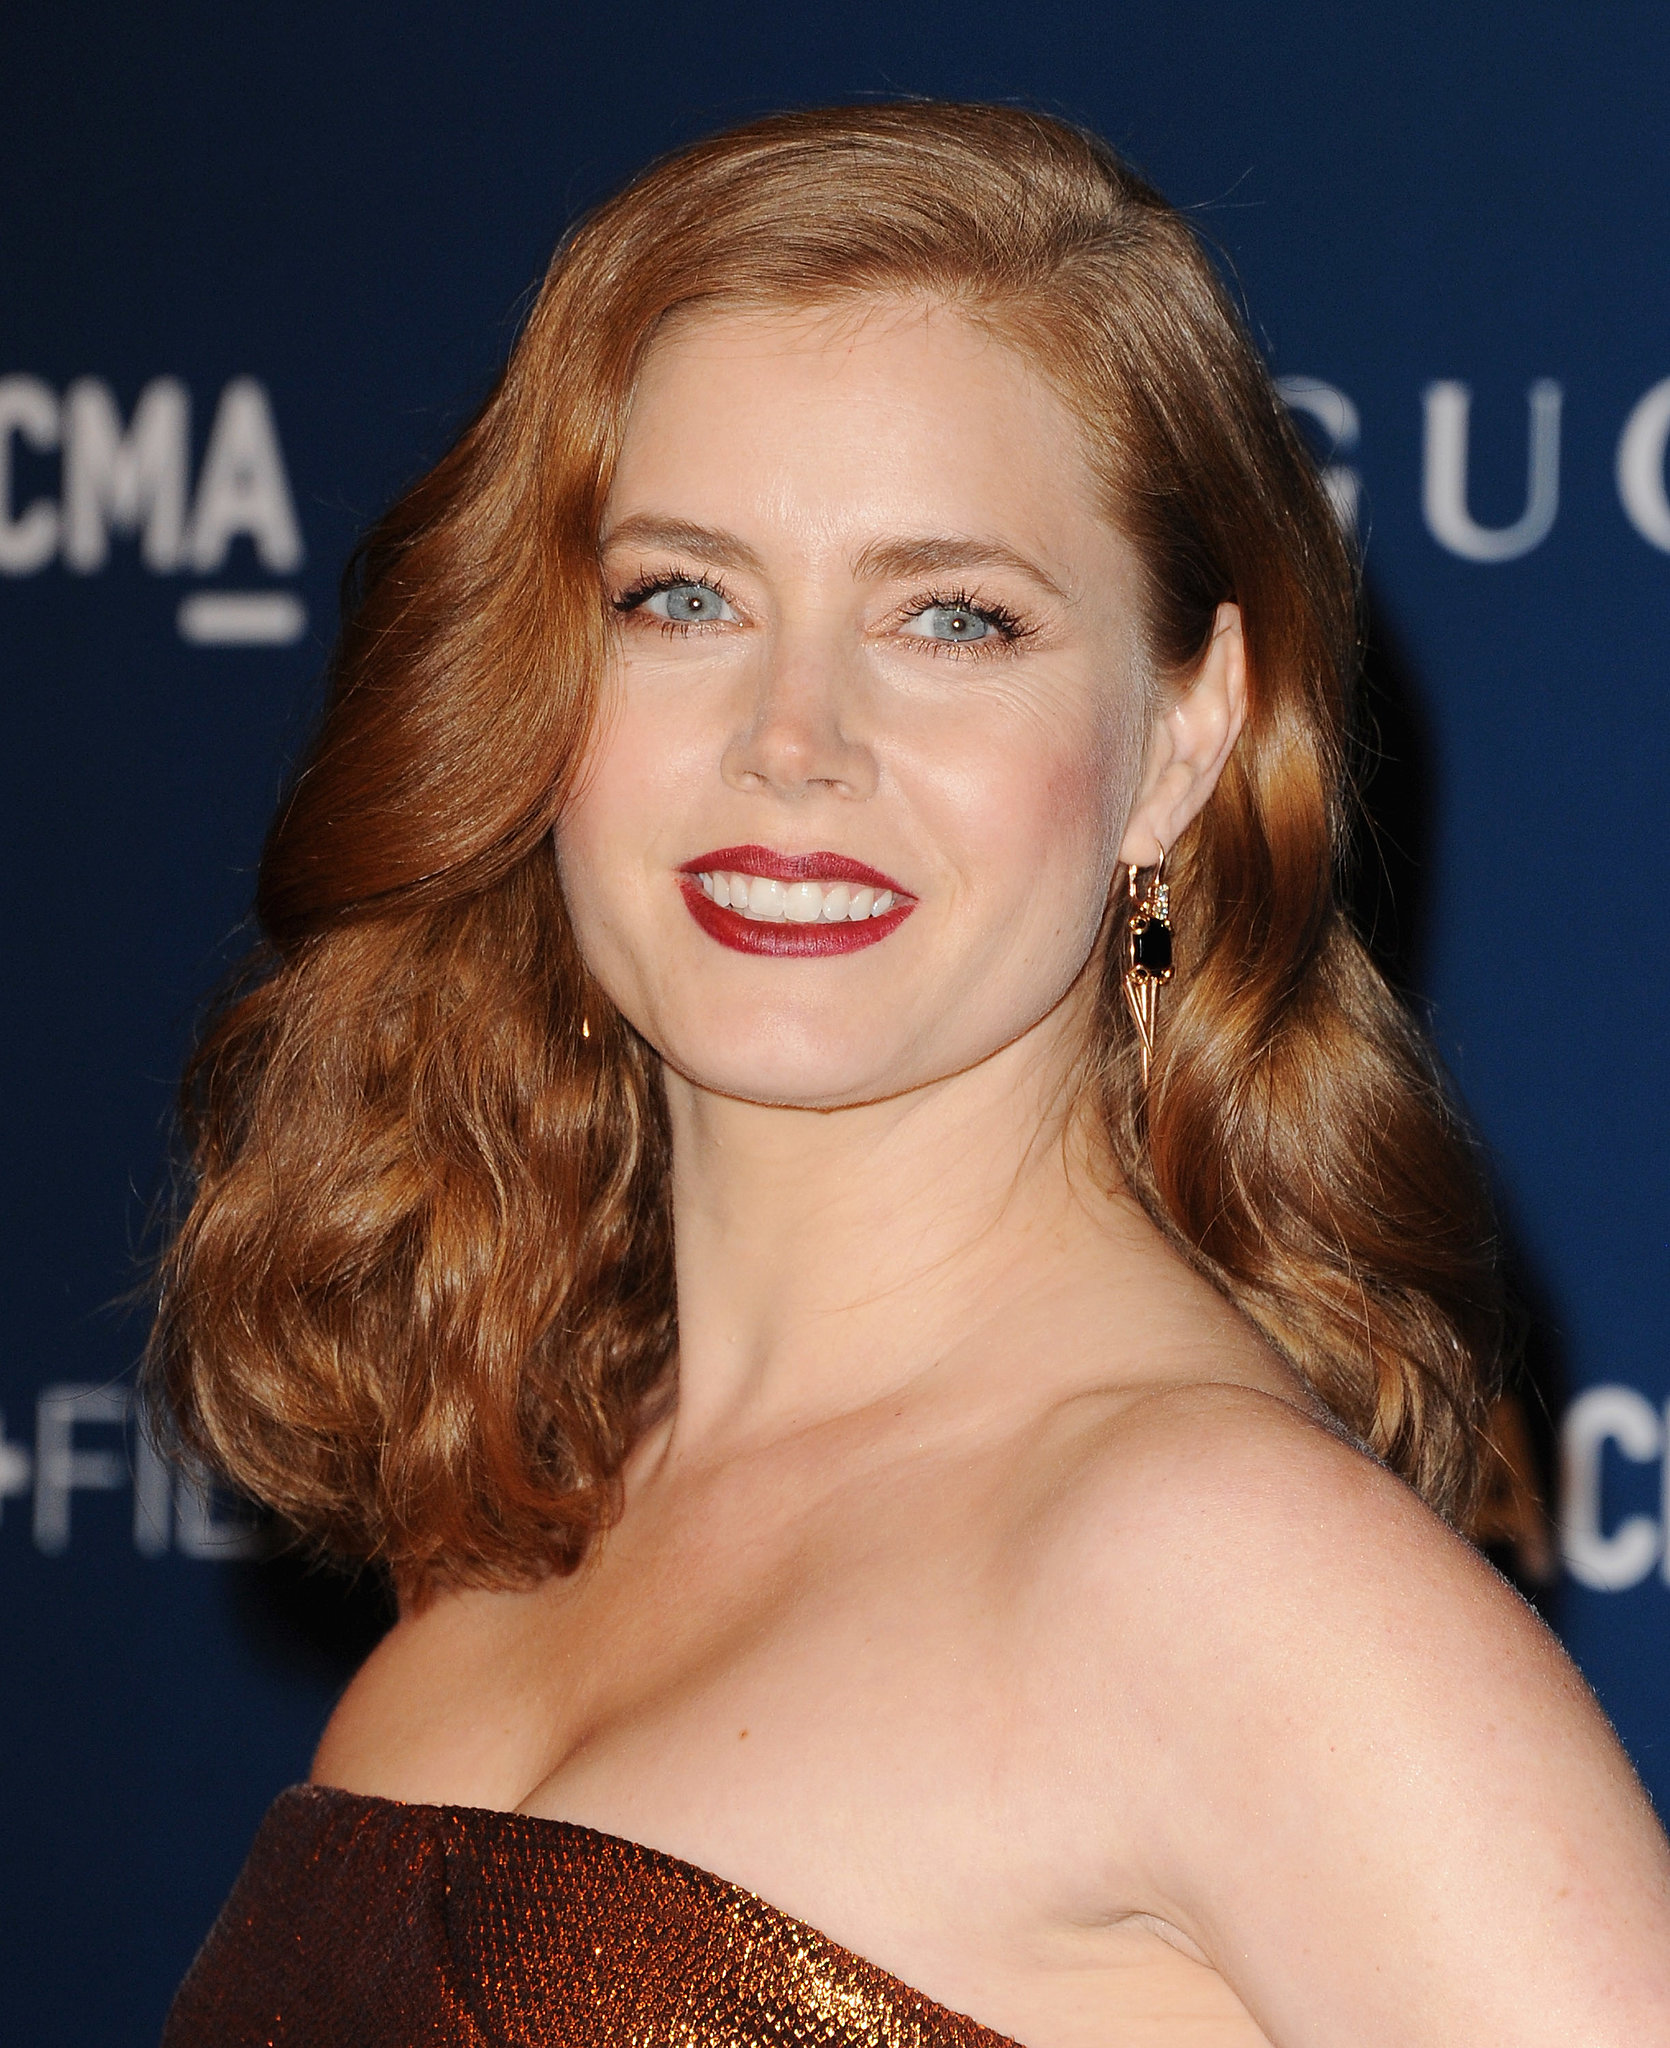 Amy Adams: Amy Adams Mixed Multiple Shades Of Red From Her Dark